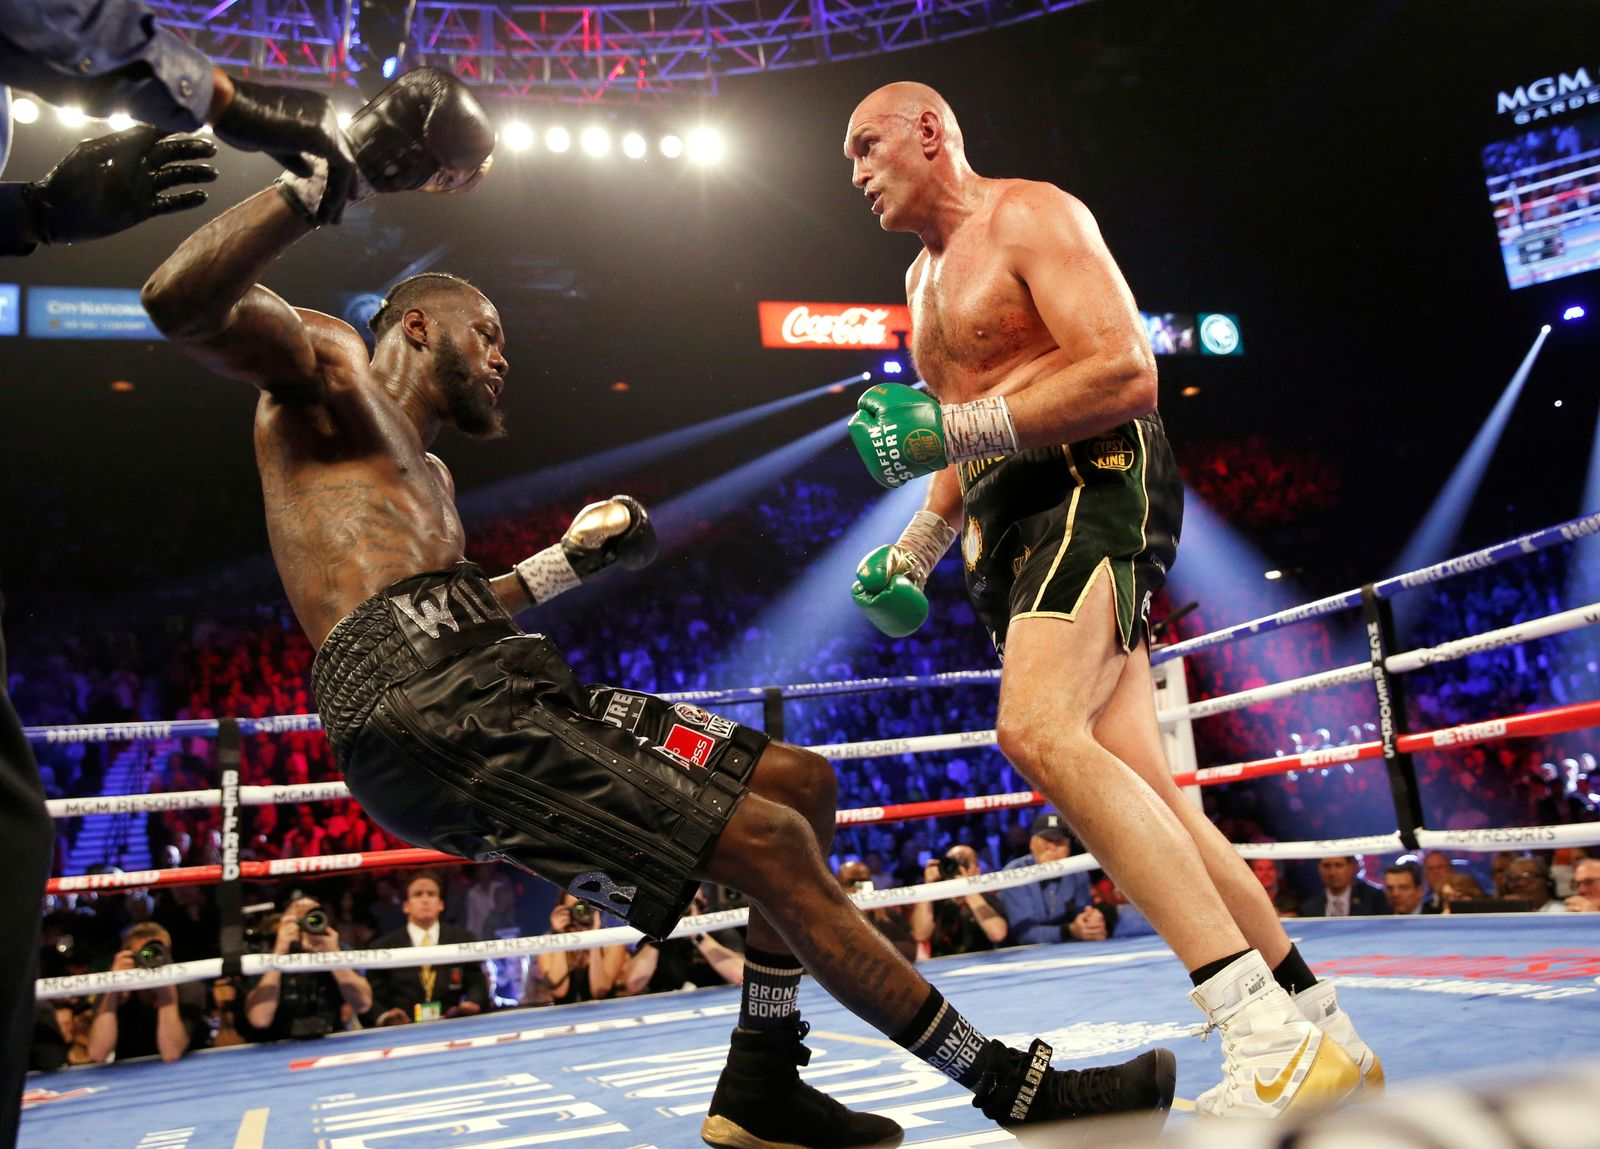 Deontay Wilder v Tyson Fury - WBC Heavyweight Title